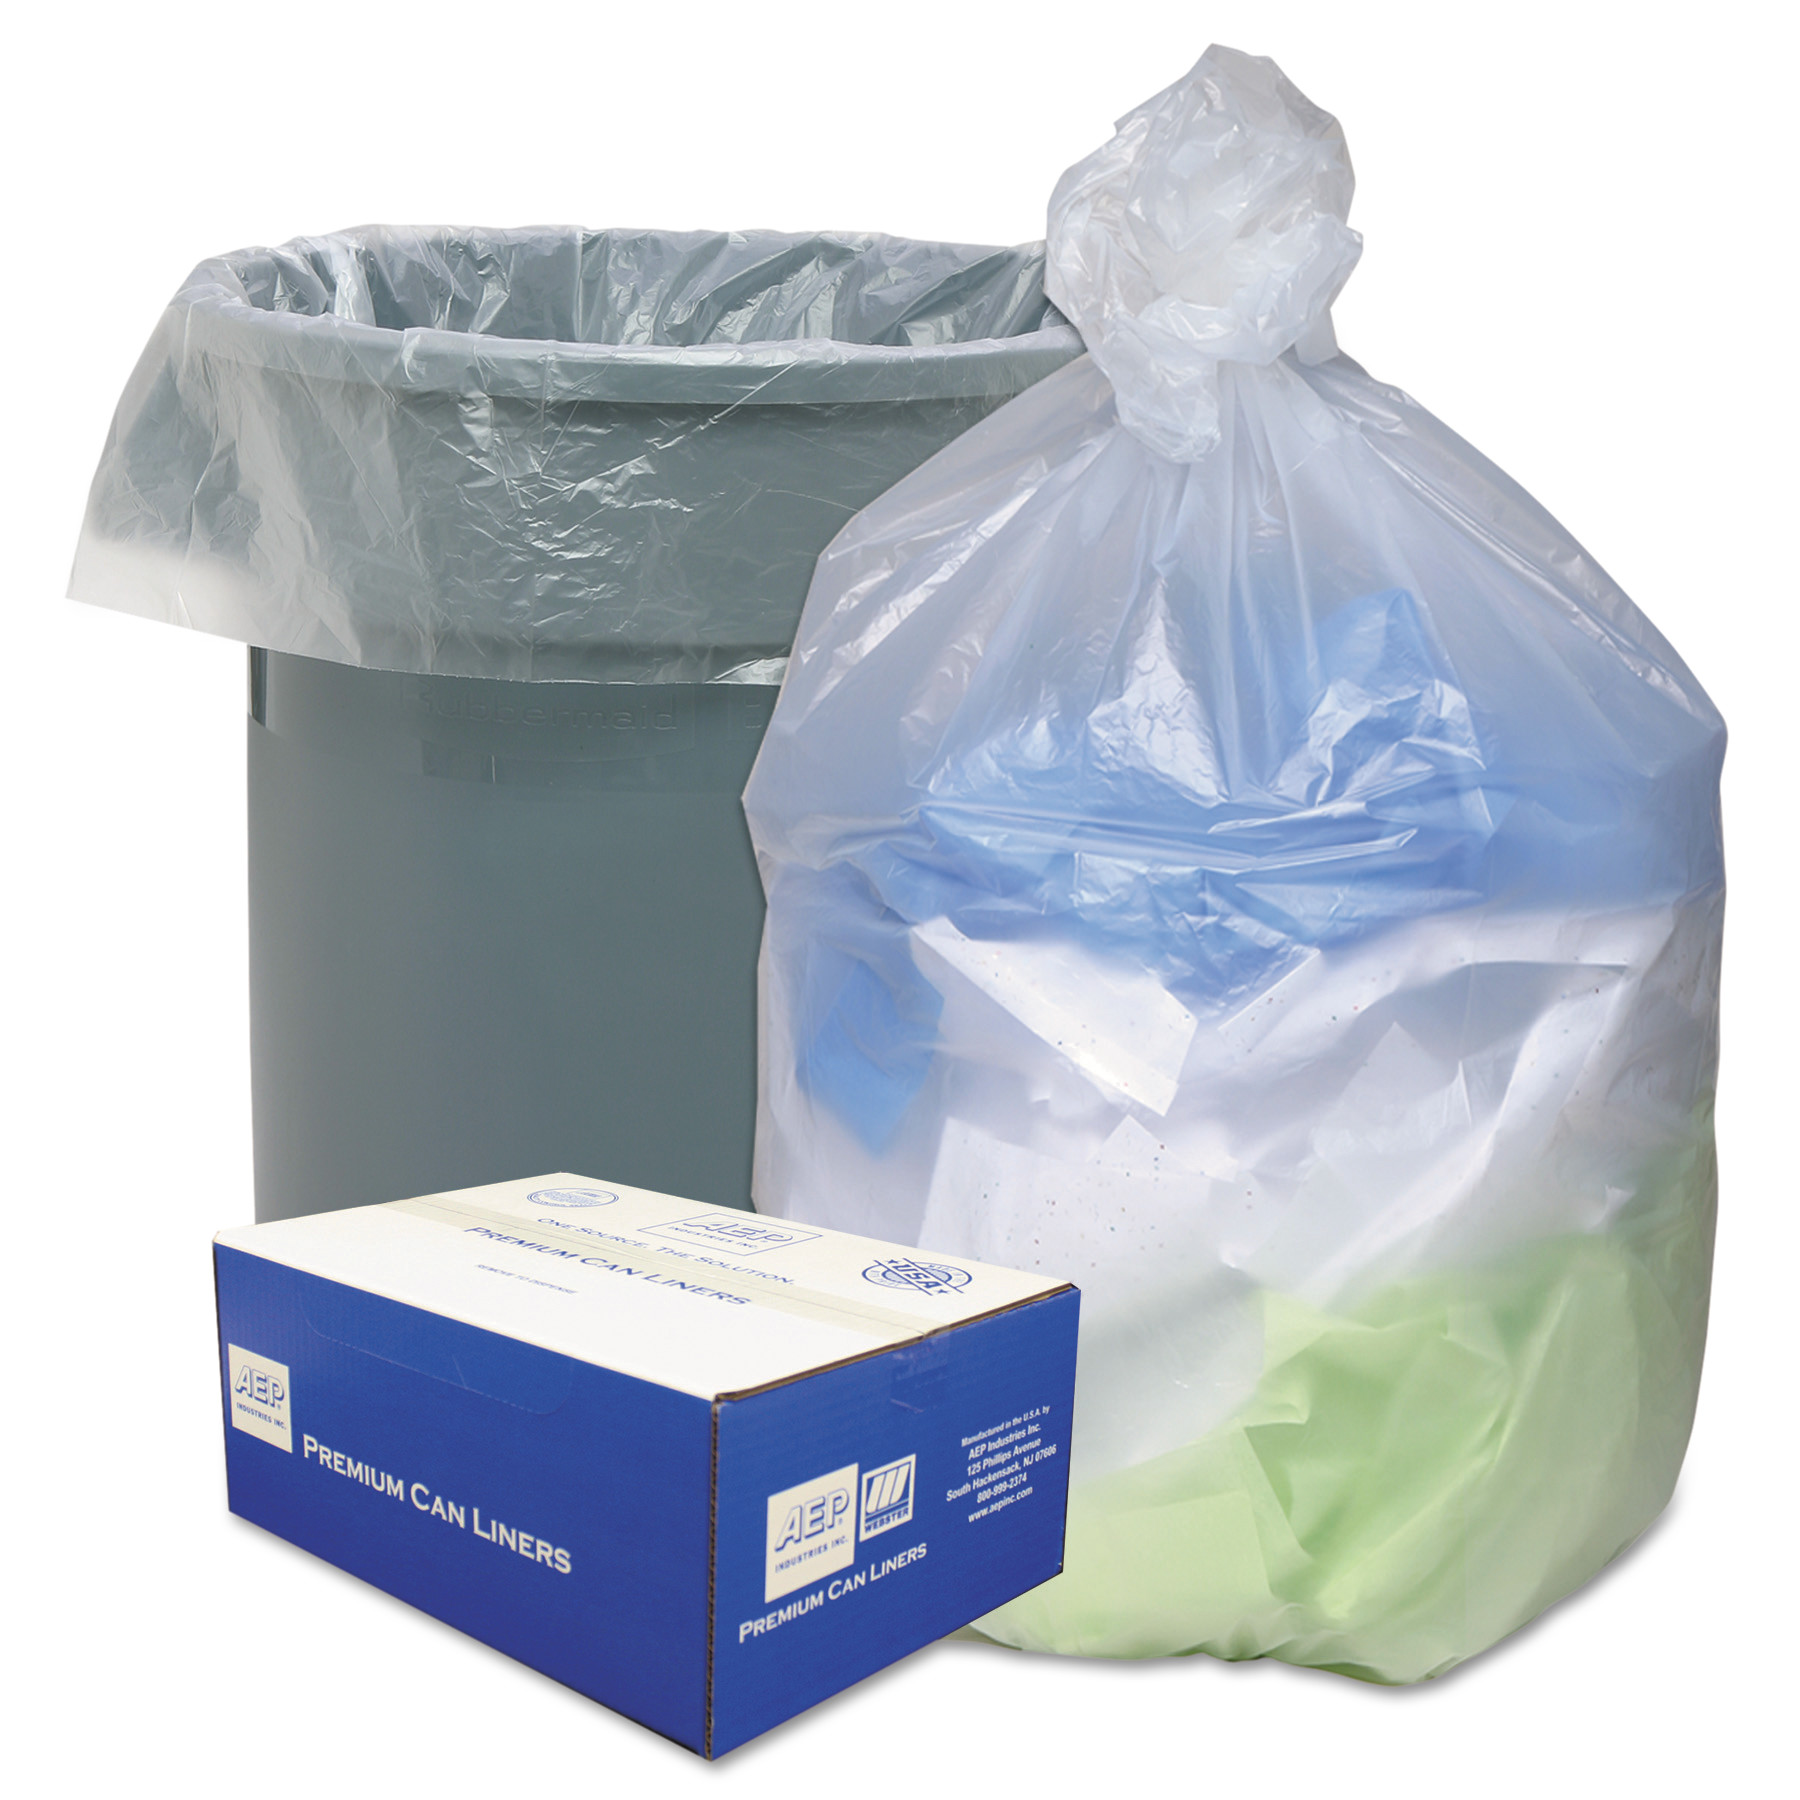 Ultra Plus Natural Can Liner, 56 gal, 25 sheets, 200 ct